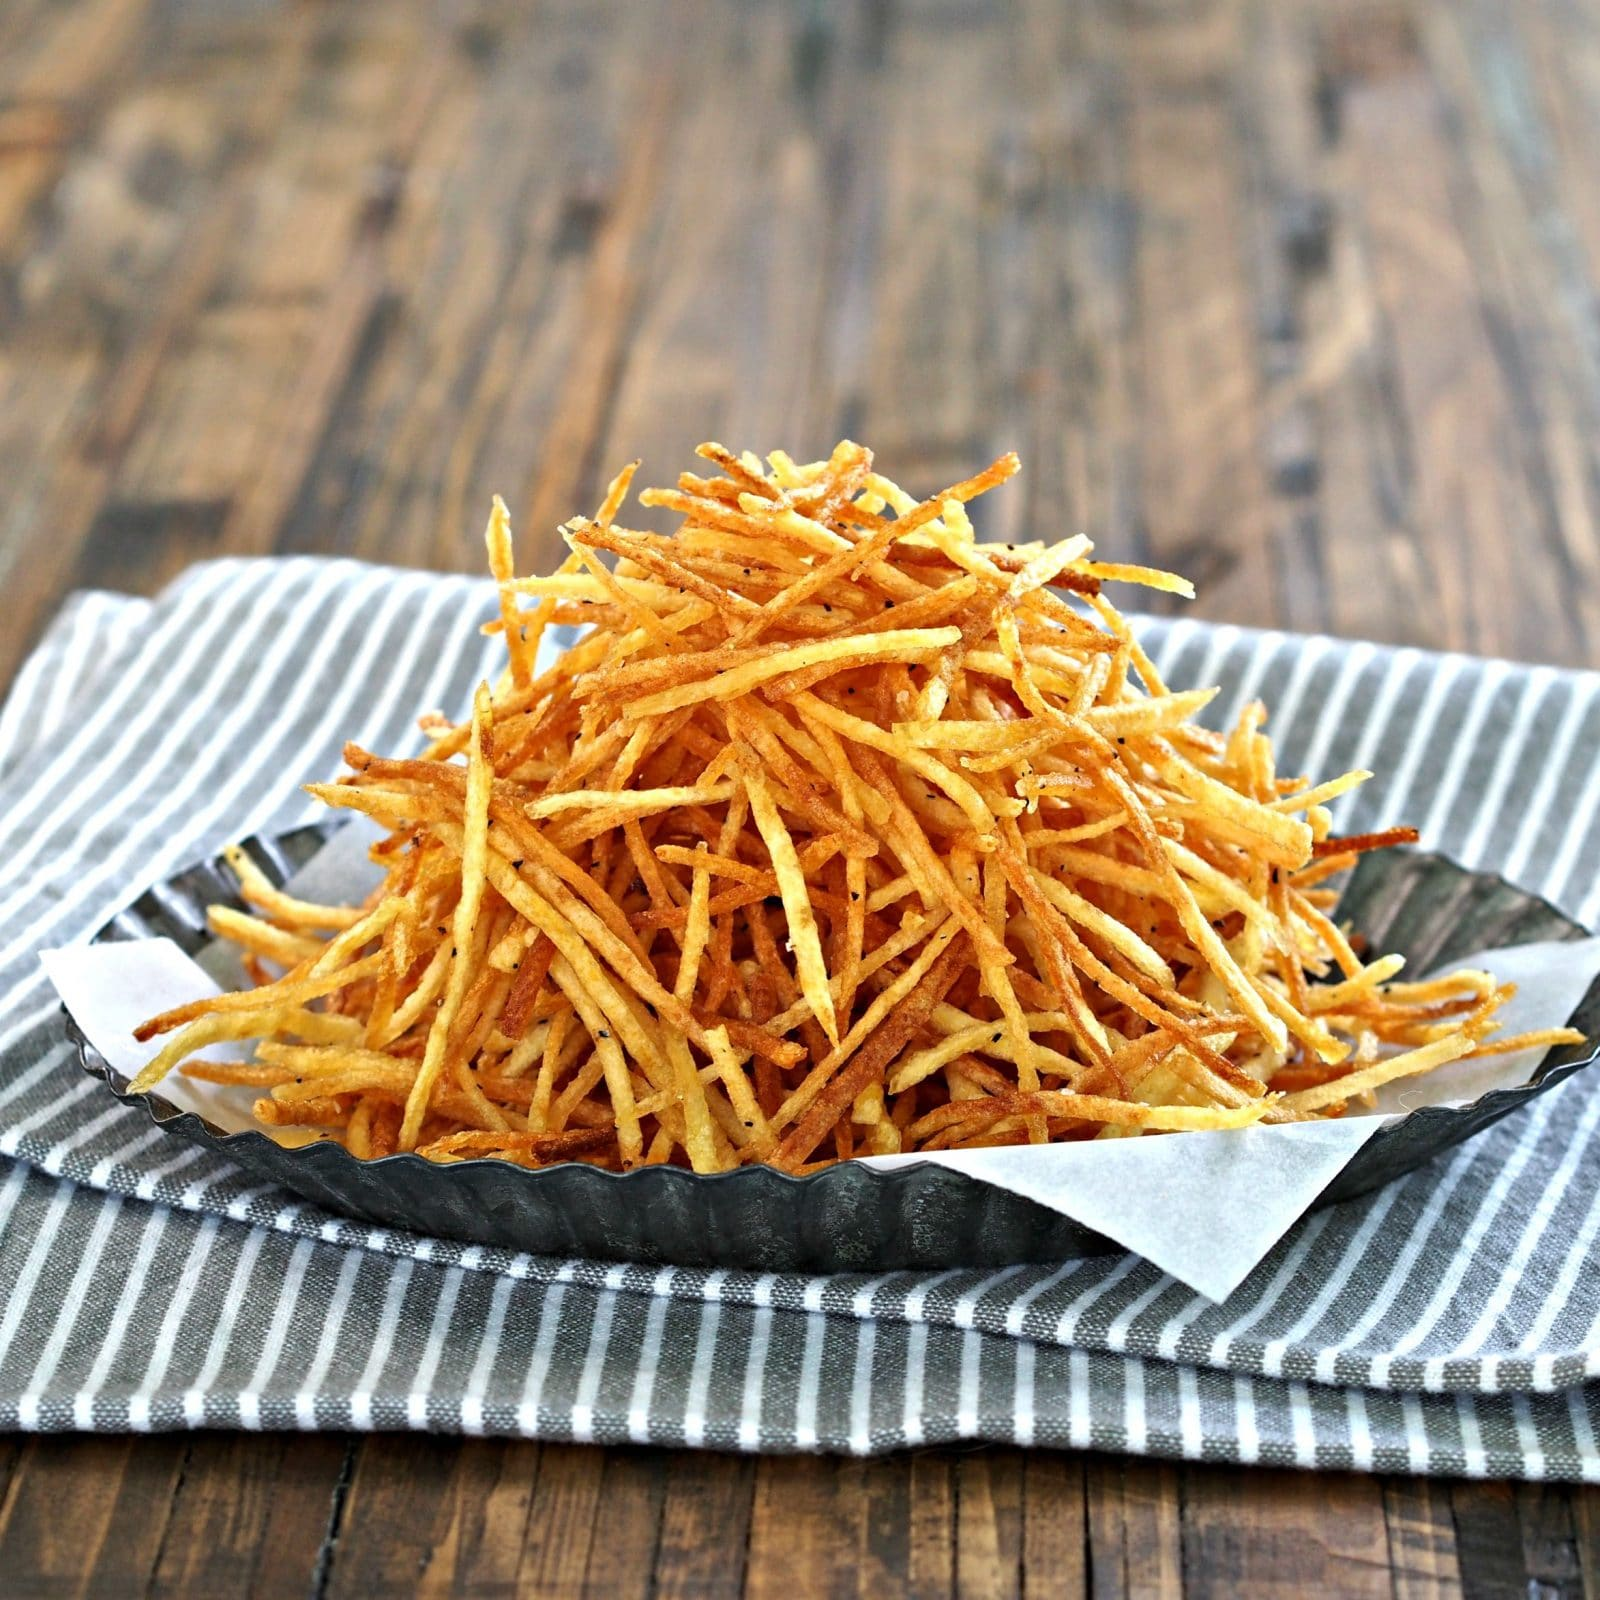 Crispy Crunchy Shoestring Potatoes. Matchstick potatoes deep-fried until golden brown then perfectly seasoned. Simple, delicious and addicting. Simply Sated